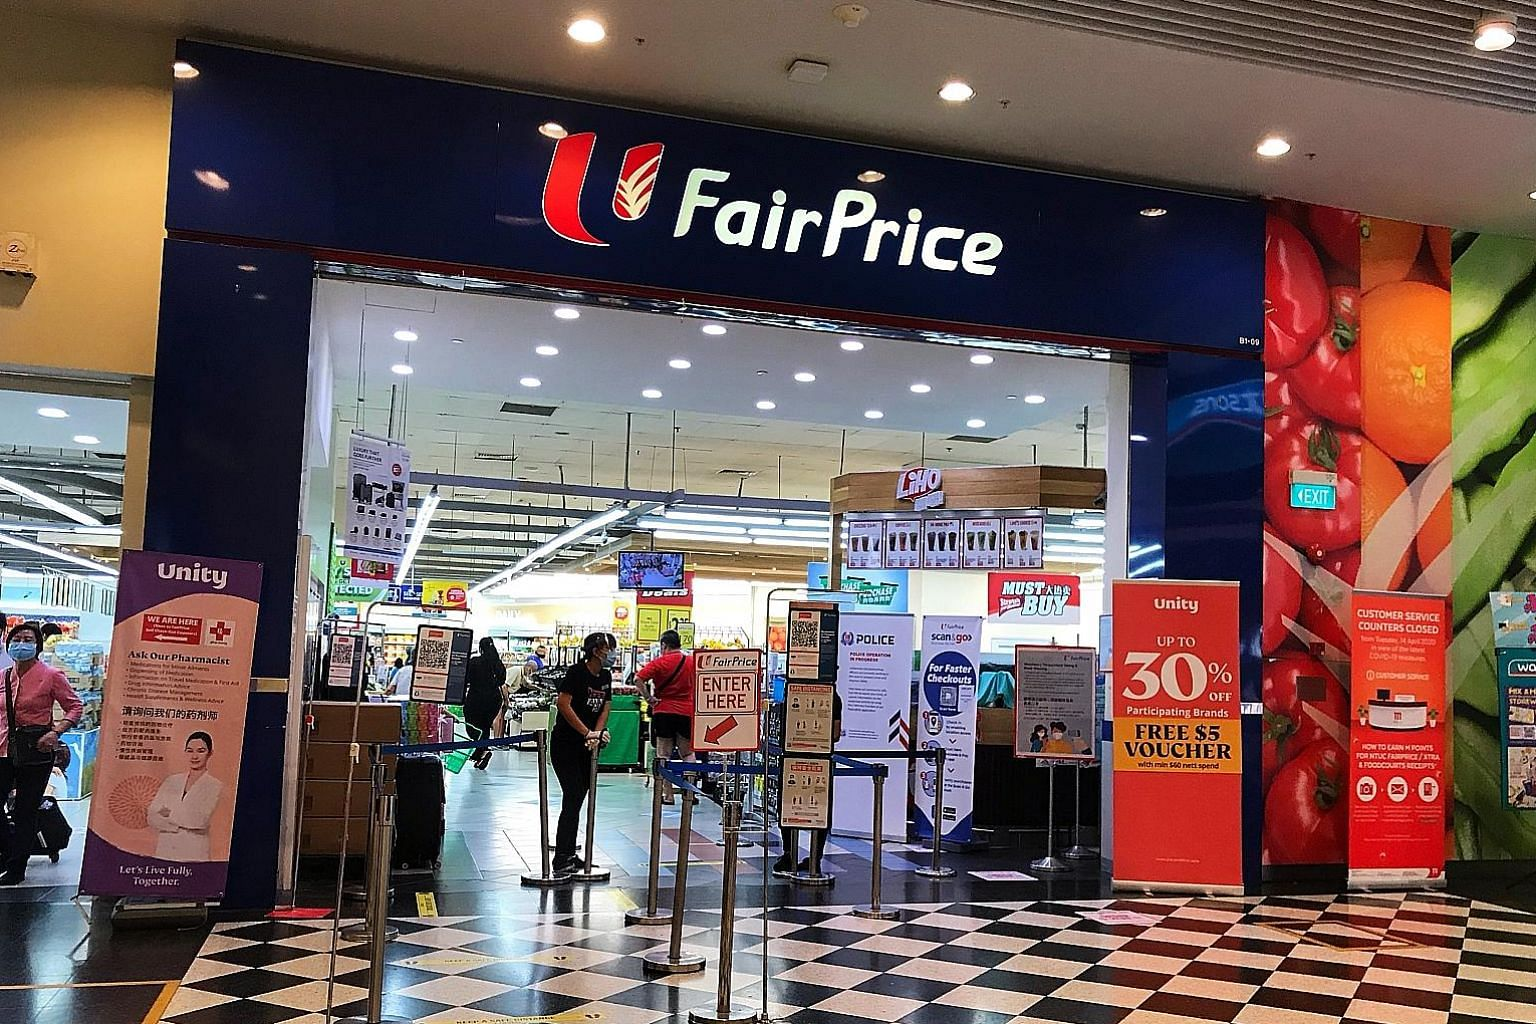 Jurong Point's FairPrice outlet (above) and Jurong West Market and Food Centre (left) at Block 505 Jurong West Street 52 are two spots which were recently visited by people who had tested positive for the coronavirus.